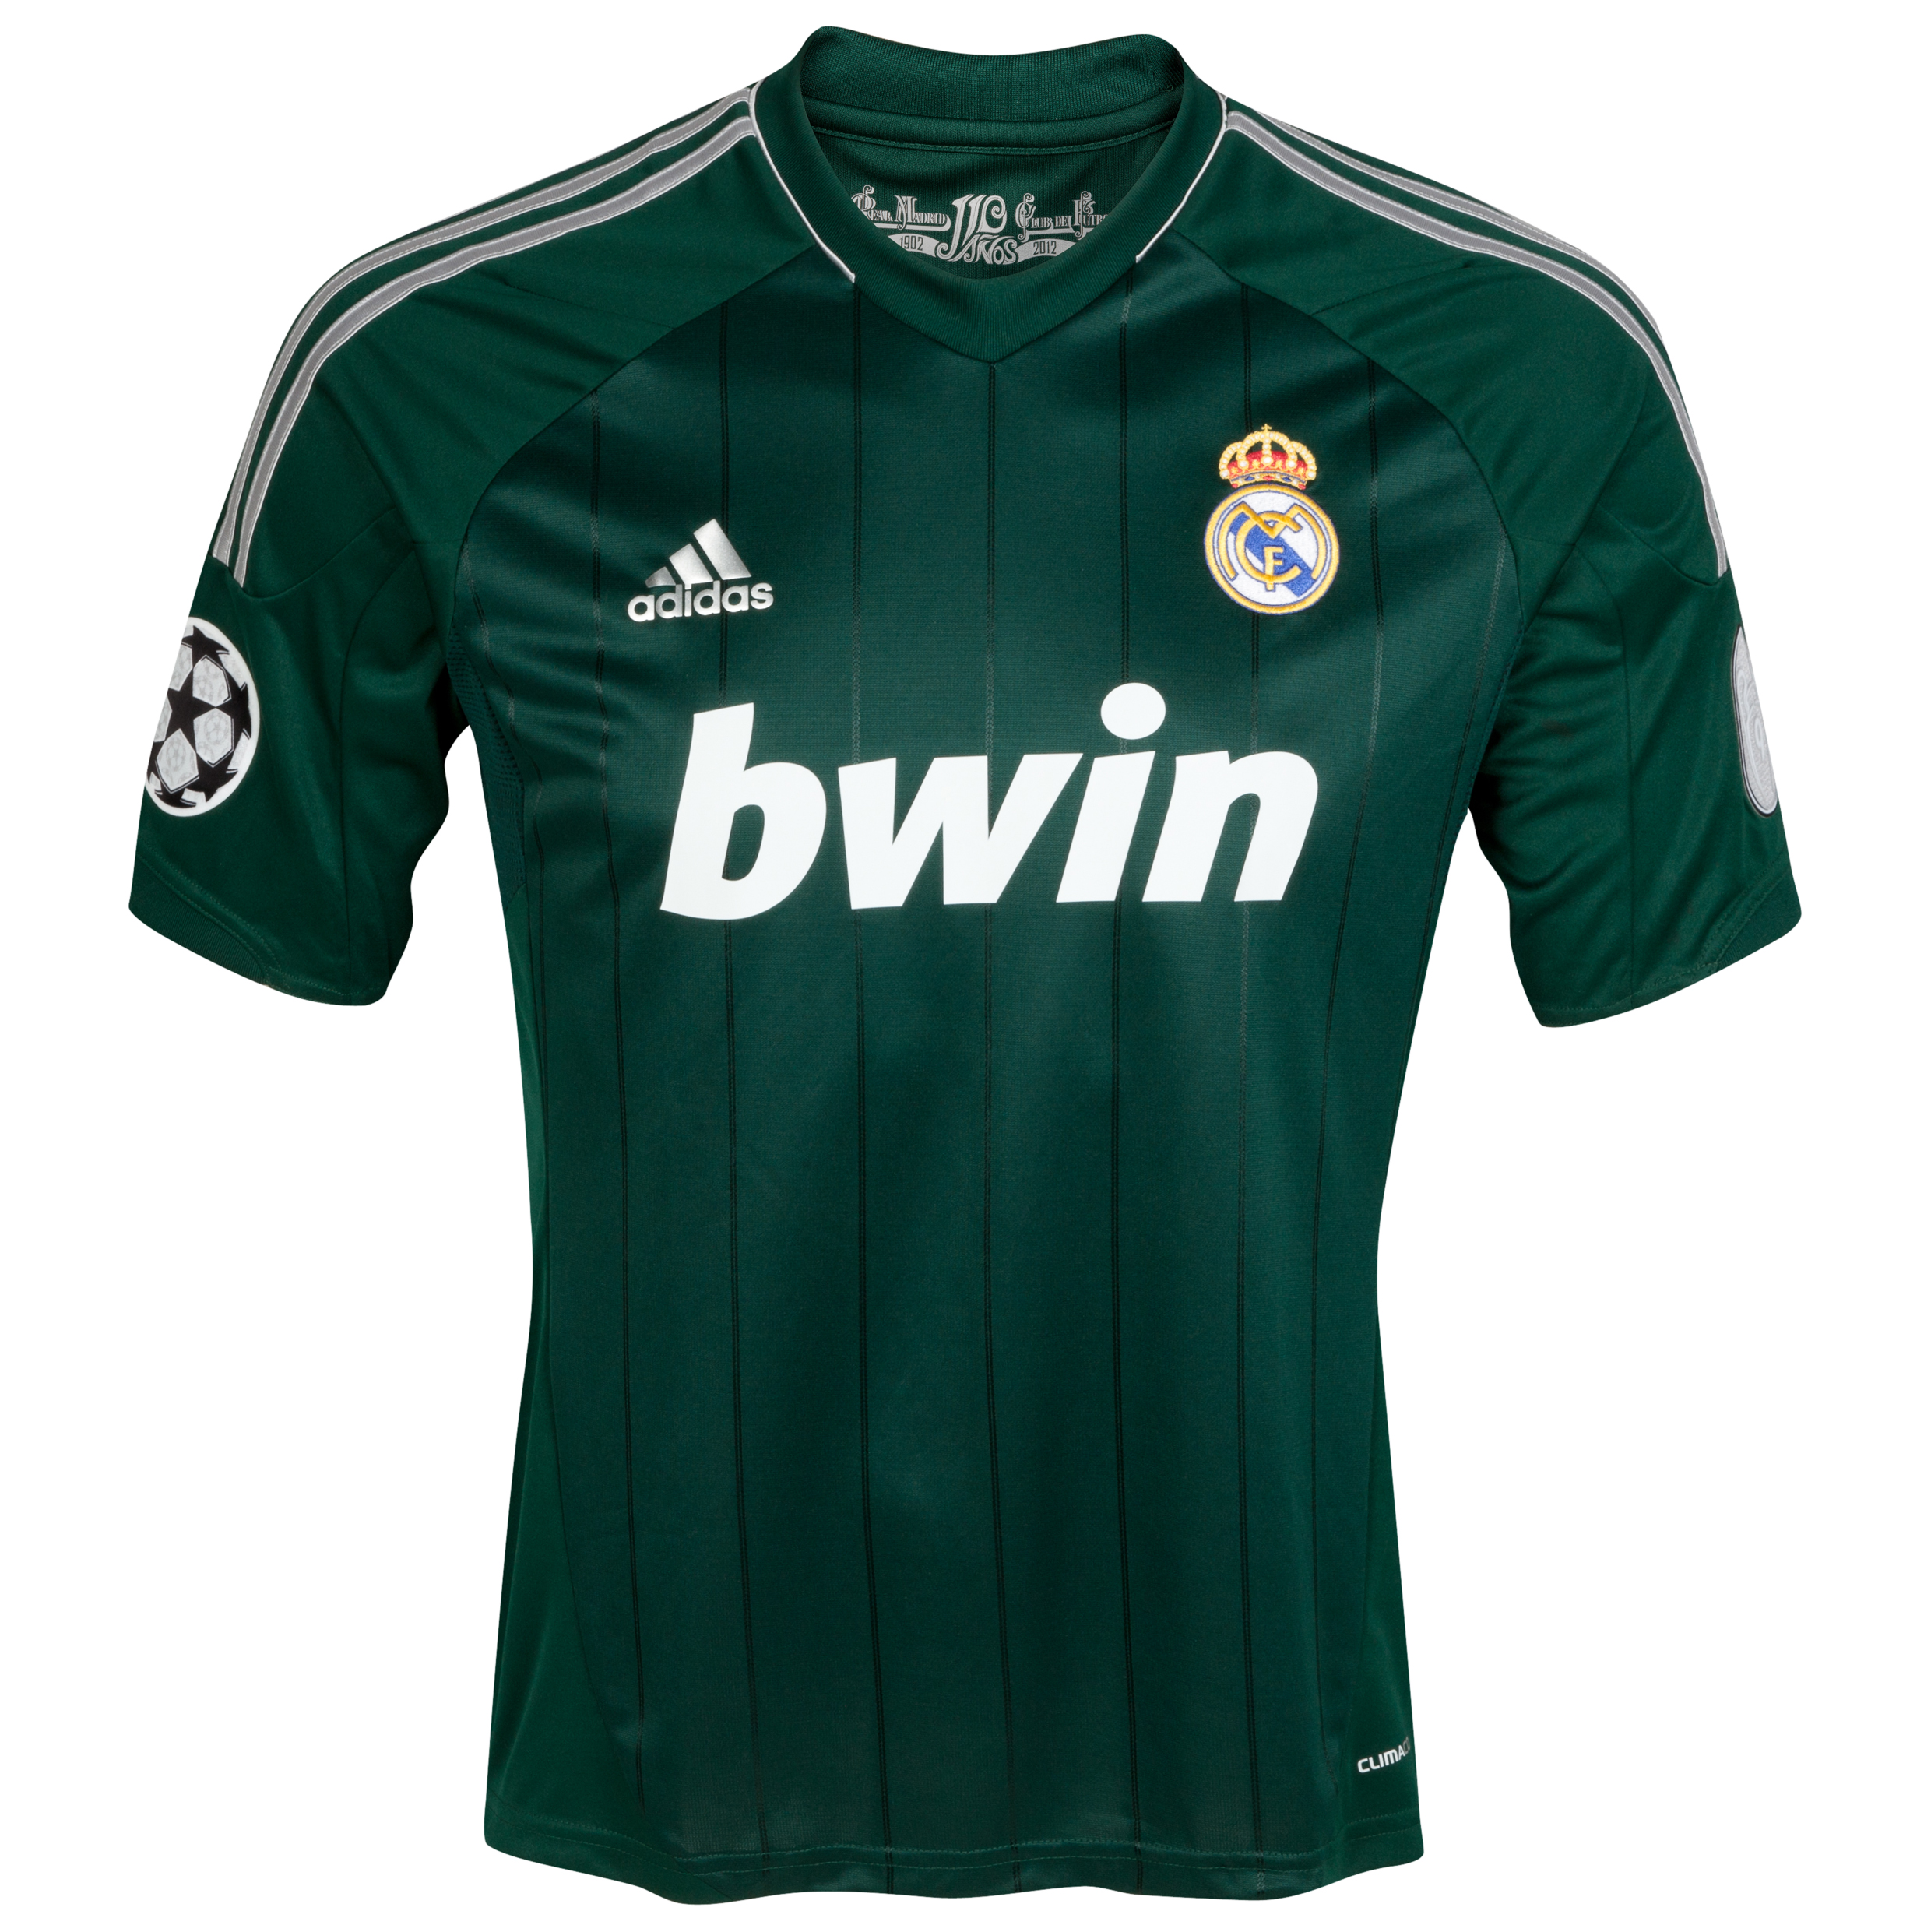 Real Madrid Third Shirt 2012/13